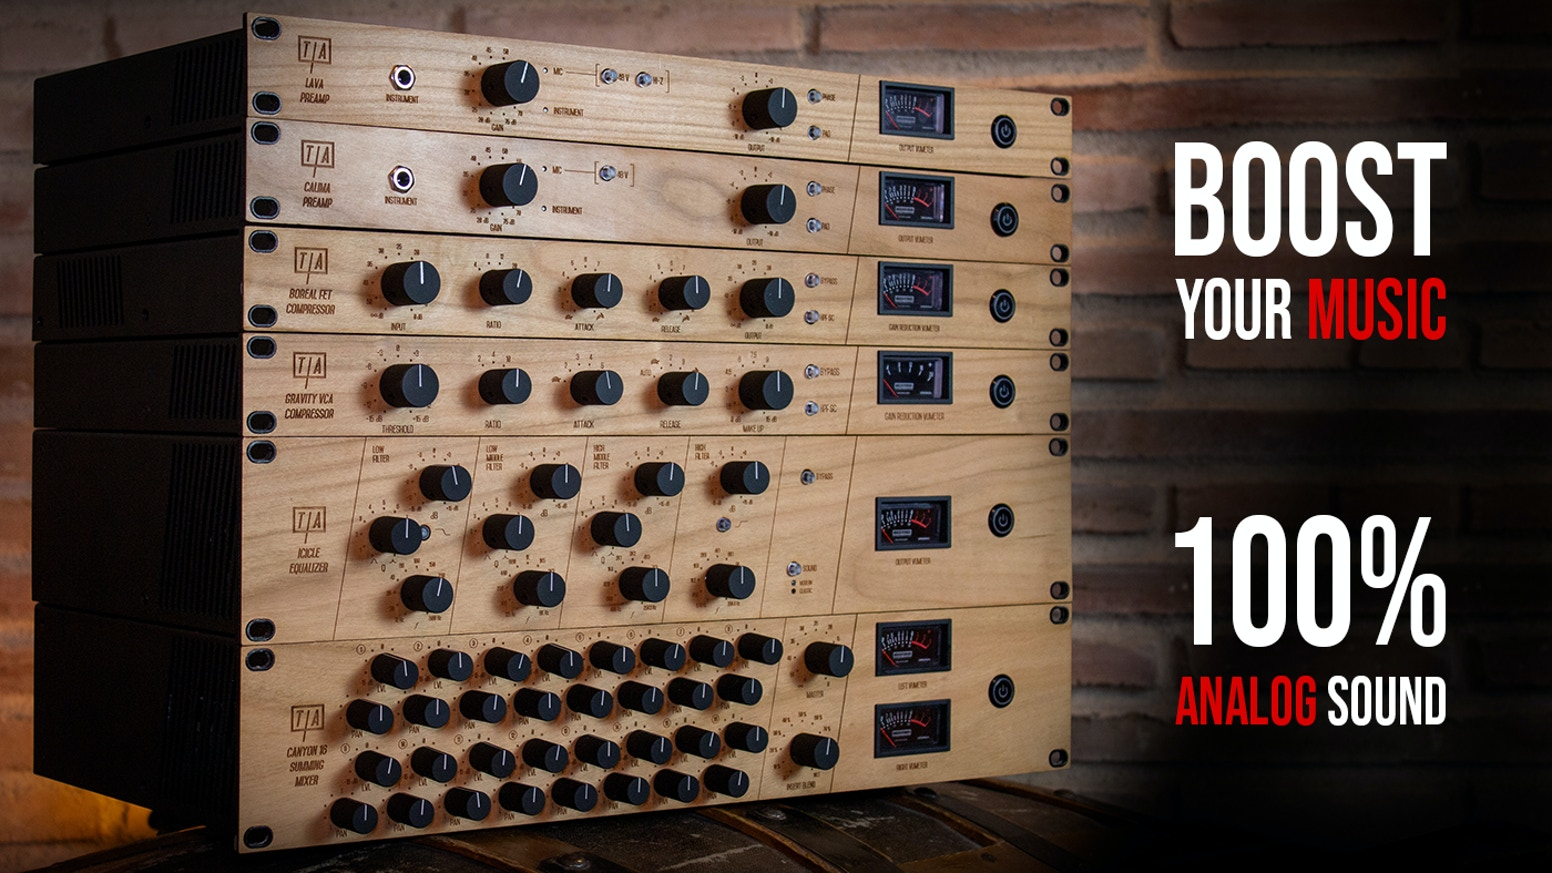 MAKE YOUR MUSIC EXPLODE with our new Analog Edition of Pro-Audio equipment for recording, mixing and mastering.